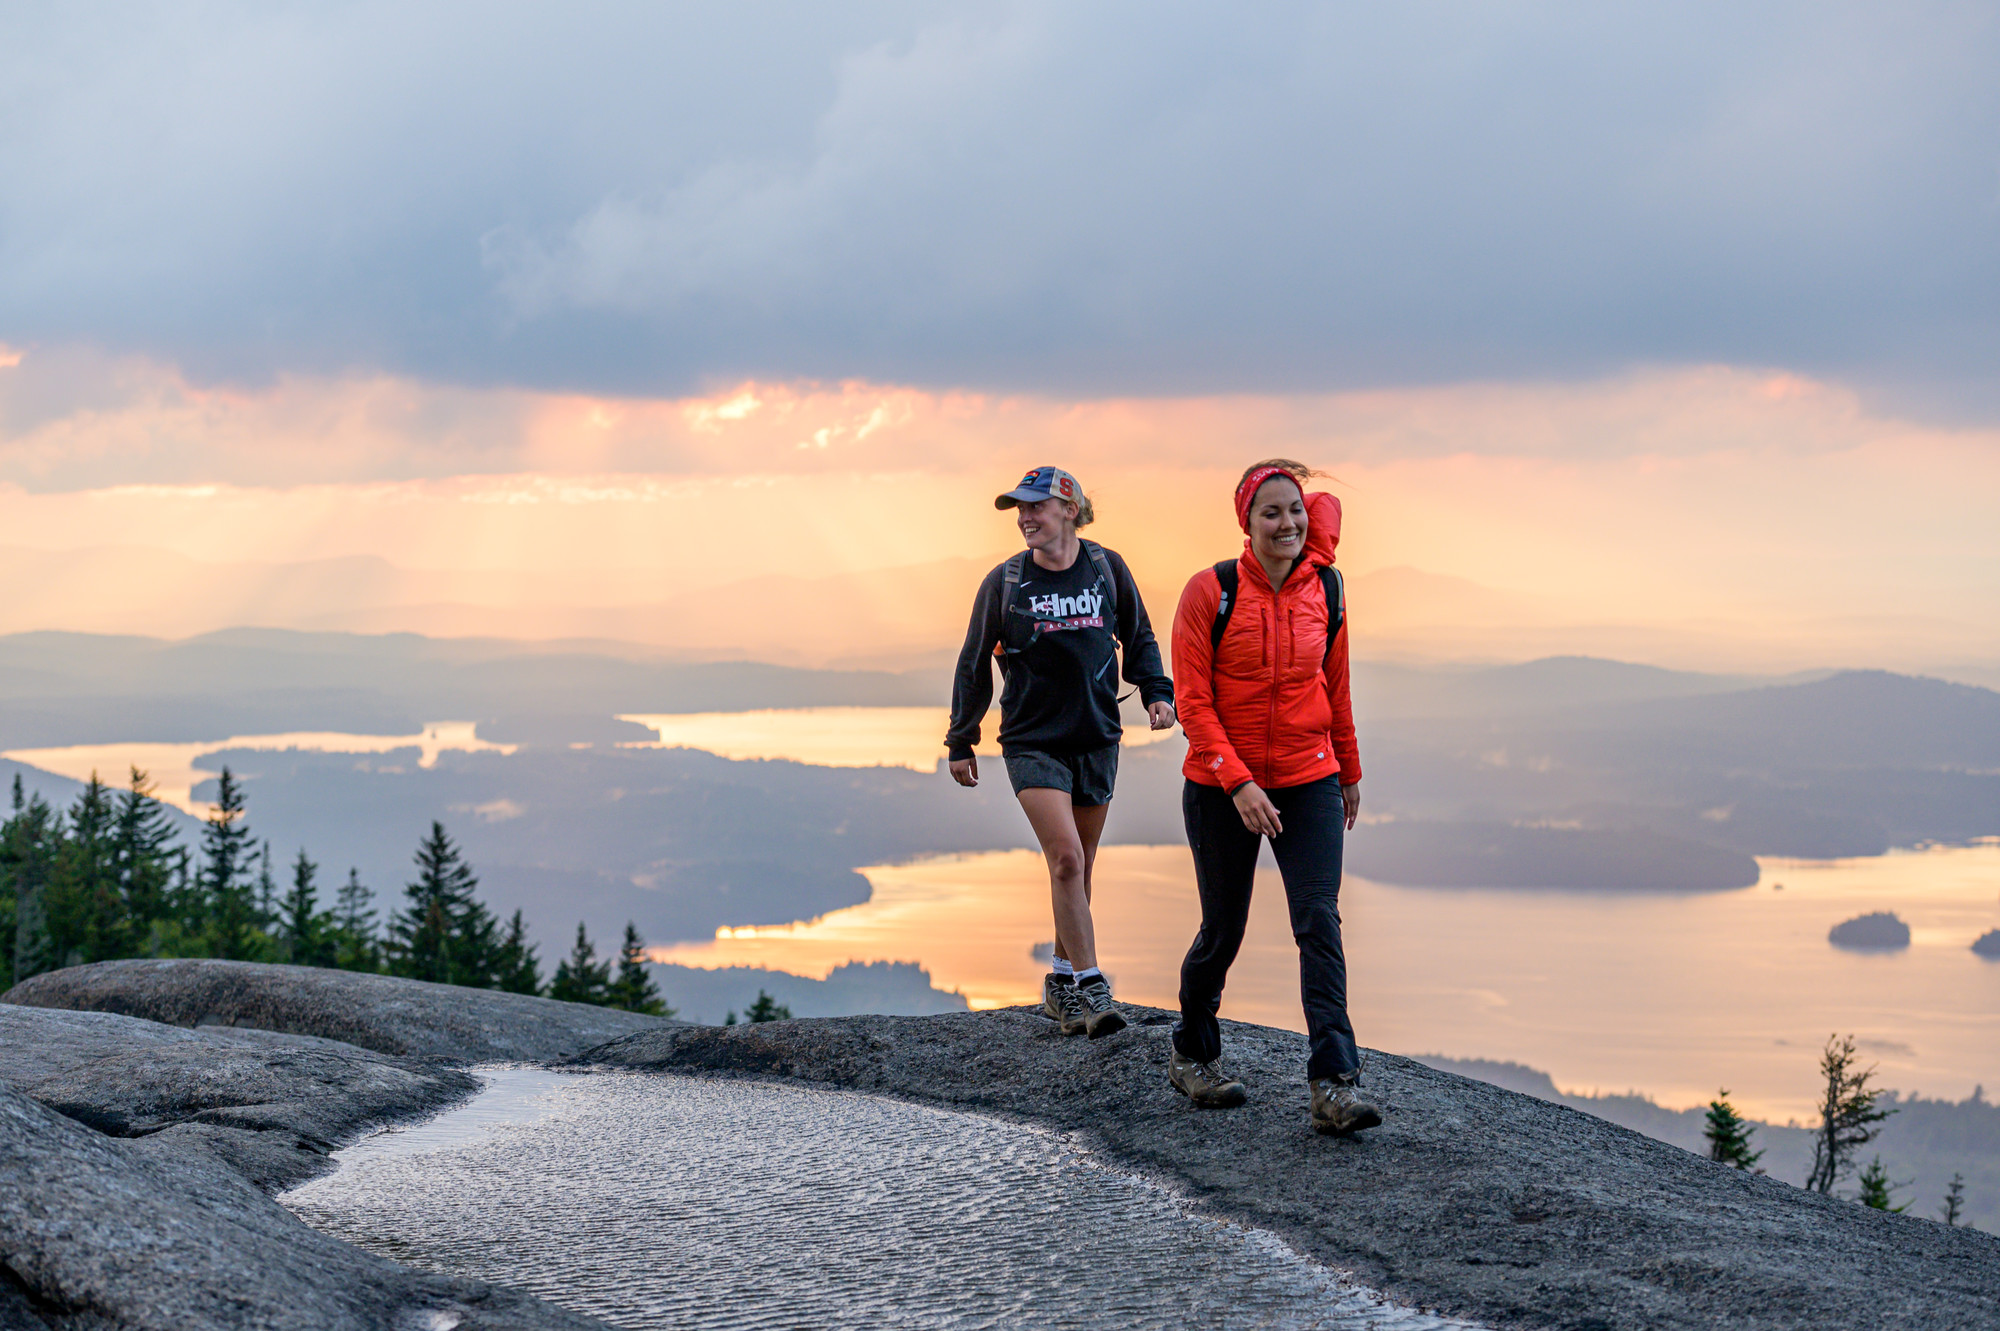 Hikers at the top of Ampersand Mountain with a hazy sunset as the backdrop